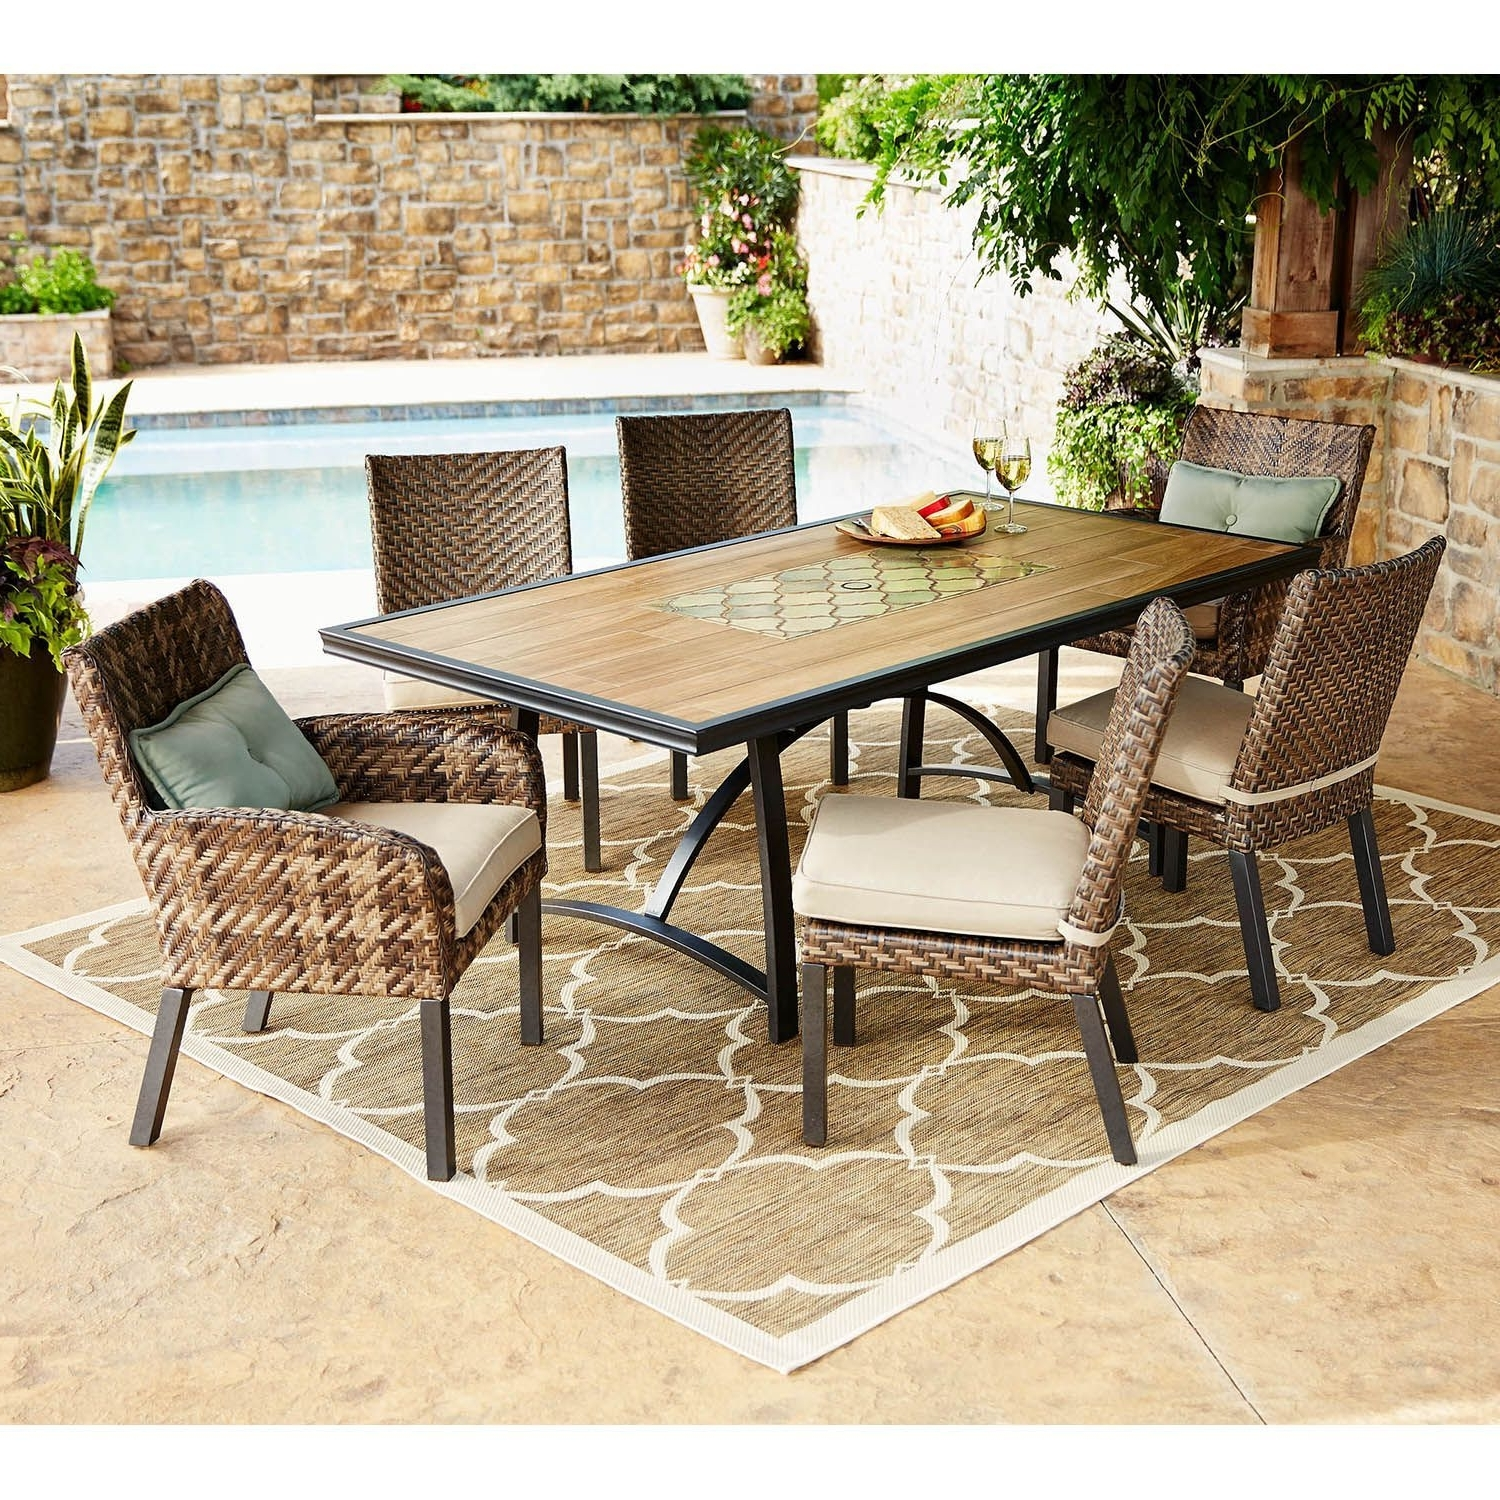 Member's Mark Essex 7 Piece Dining Set With Premium Sunbrella Fabric Within Most Popular Patio Conversation Sets At Sam's Club (View 3 of 20)